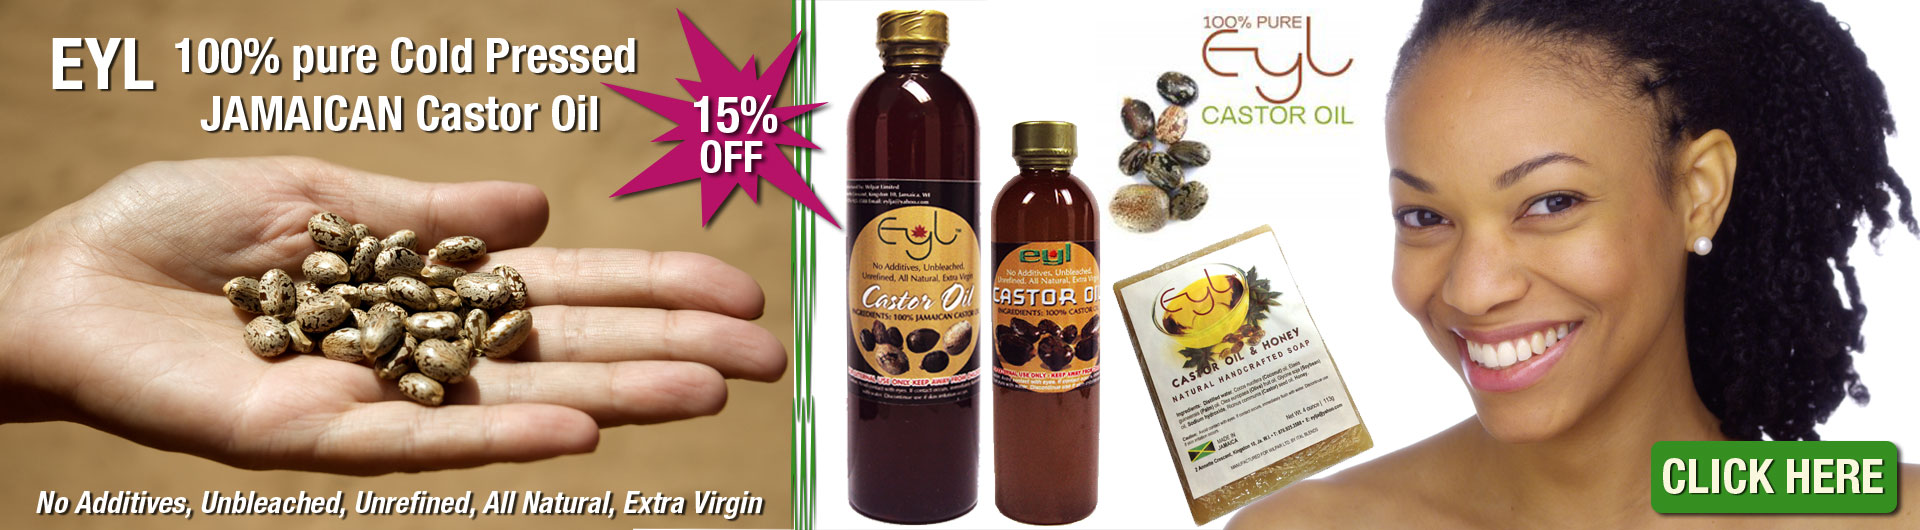 Eyl 100% Cold Pressed Castor Oil